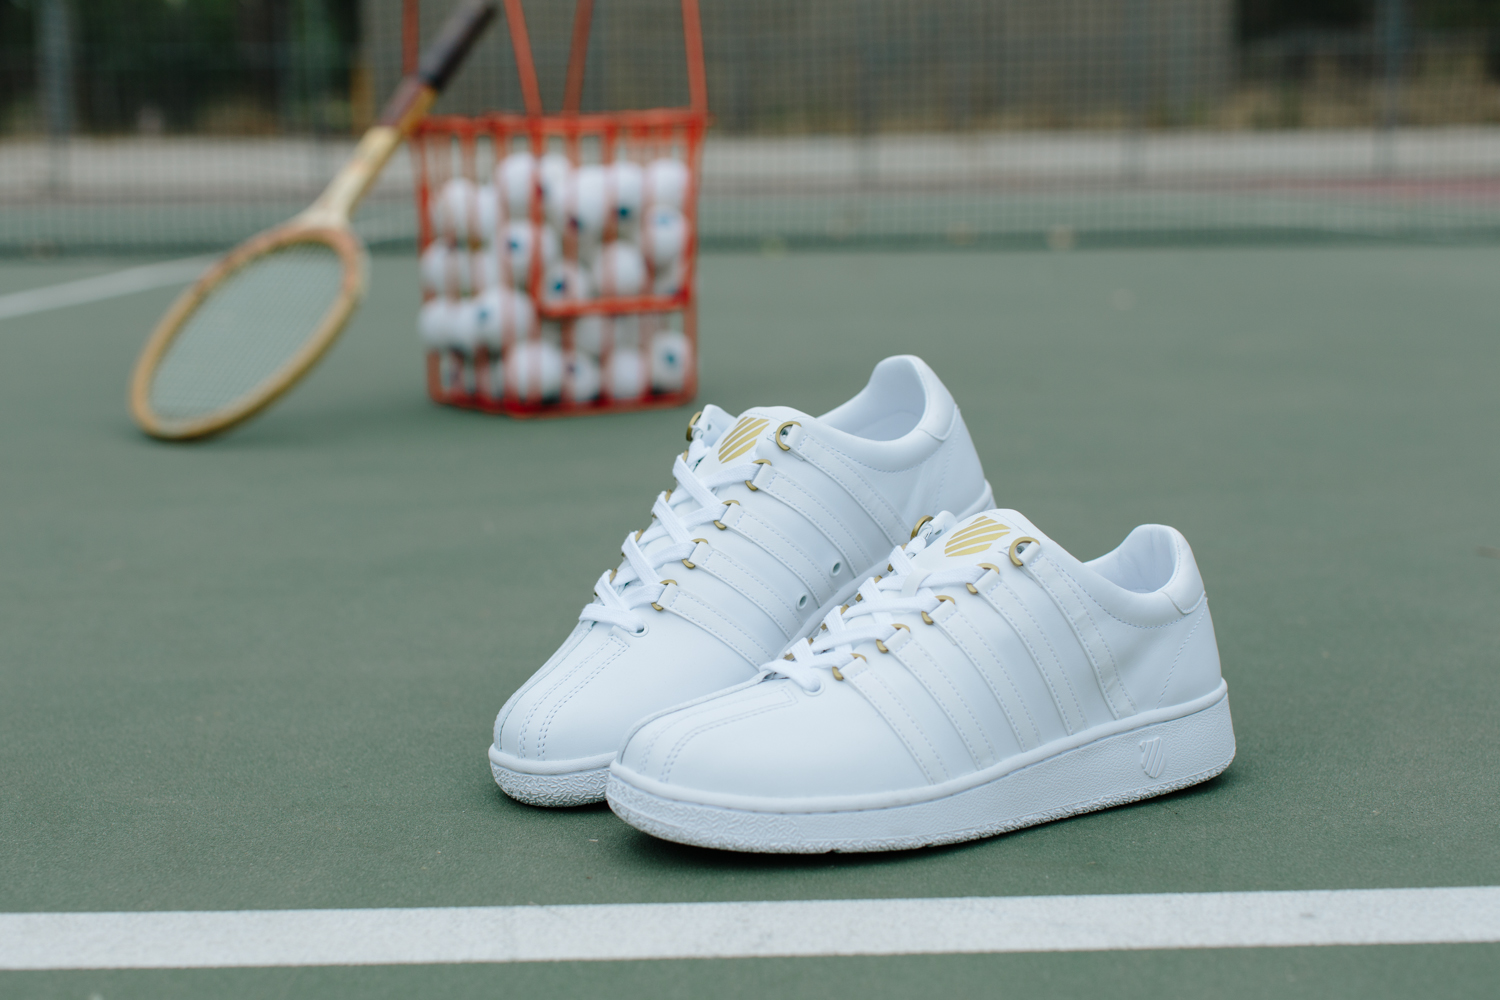 k-swiss product shot 1